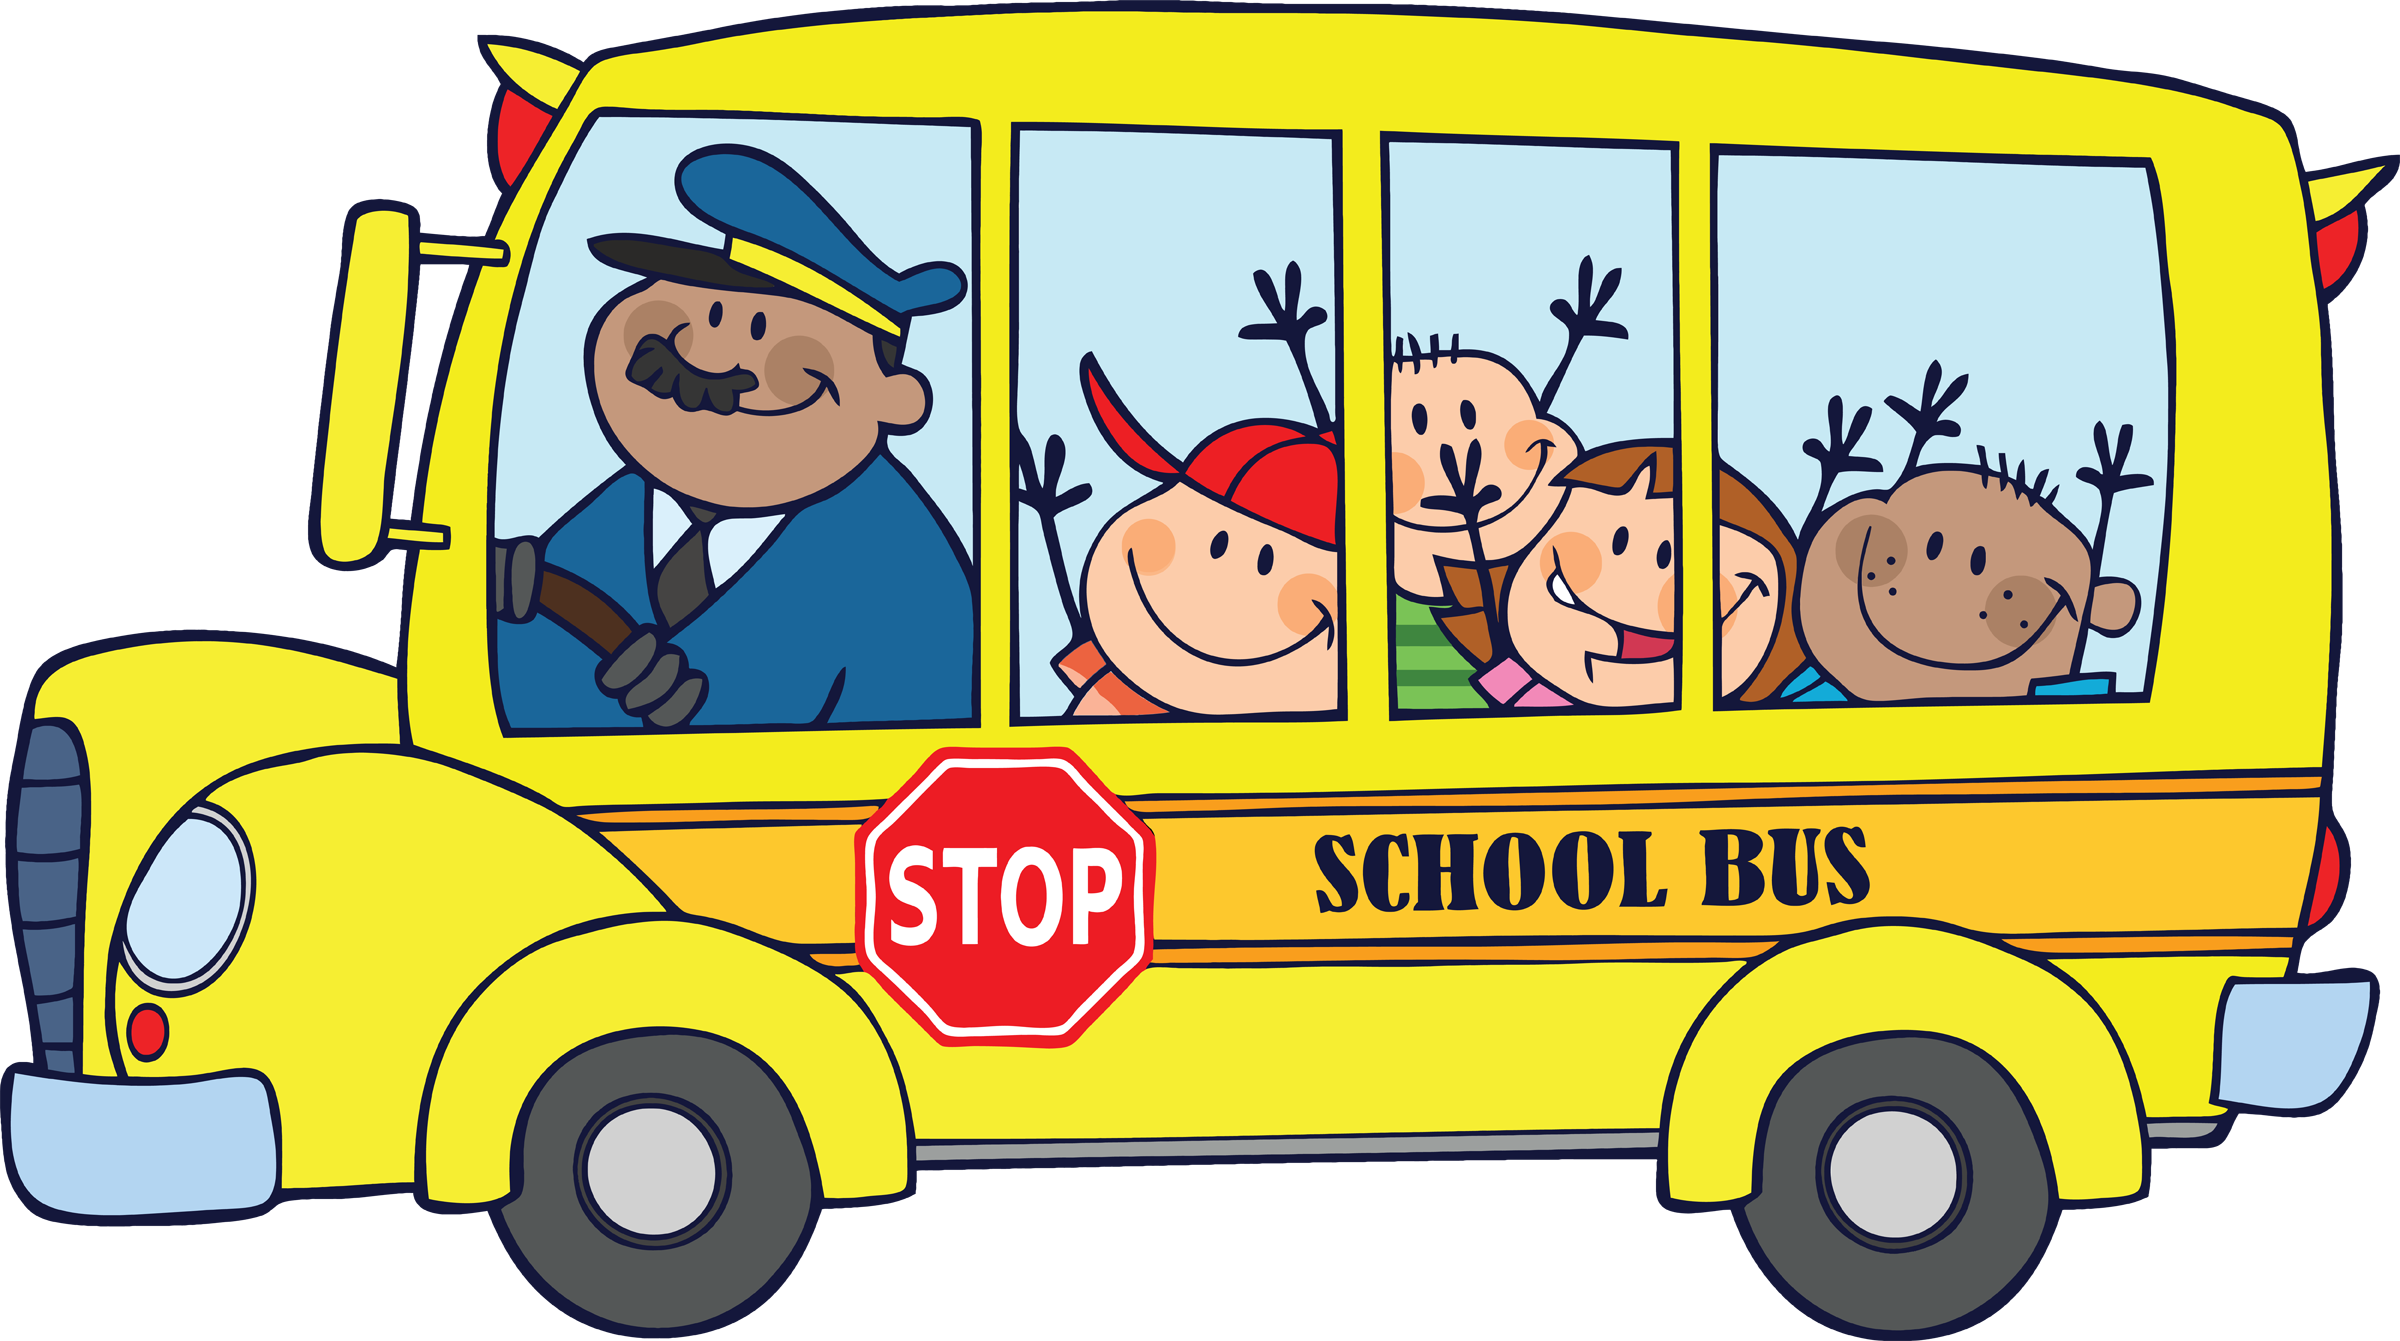 school bus driver quotes clipart panda free clipart images rh pinterest com school bus clip art free school bus clip art free downloads